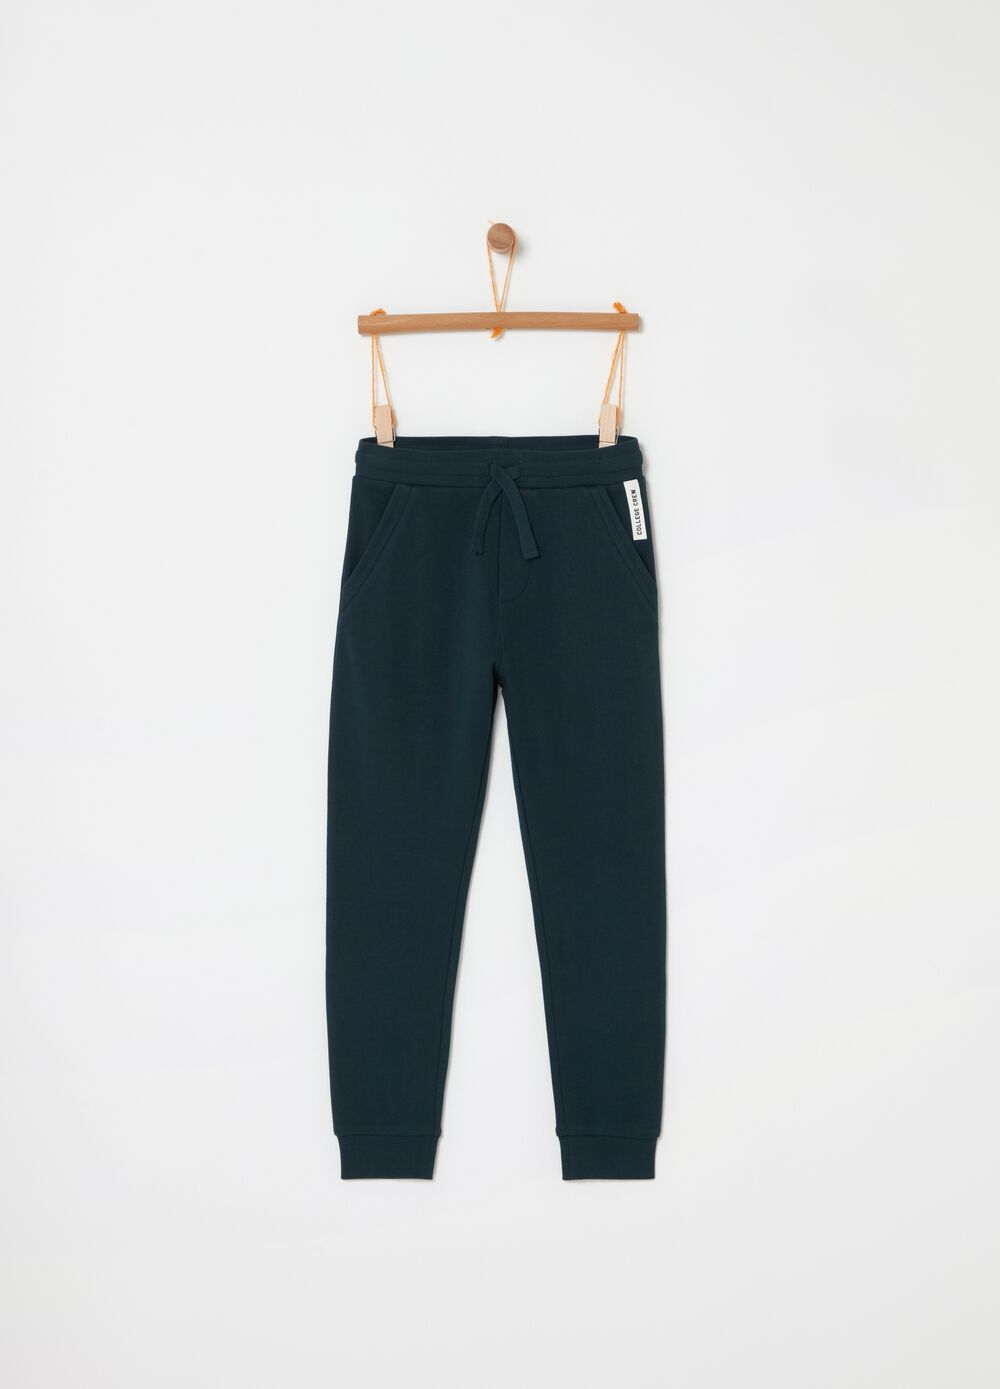 100% cotton fleece trousers with pockets